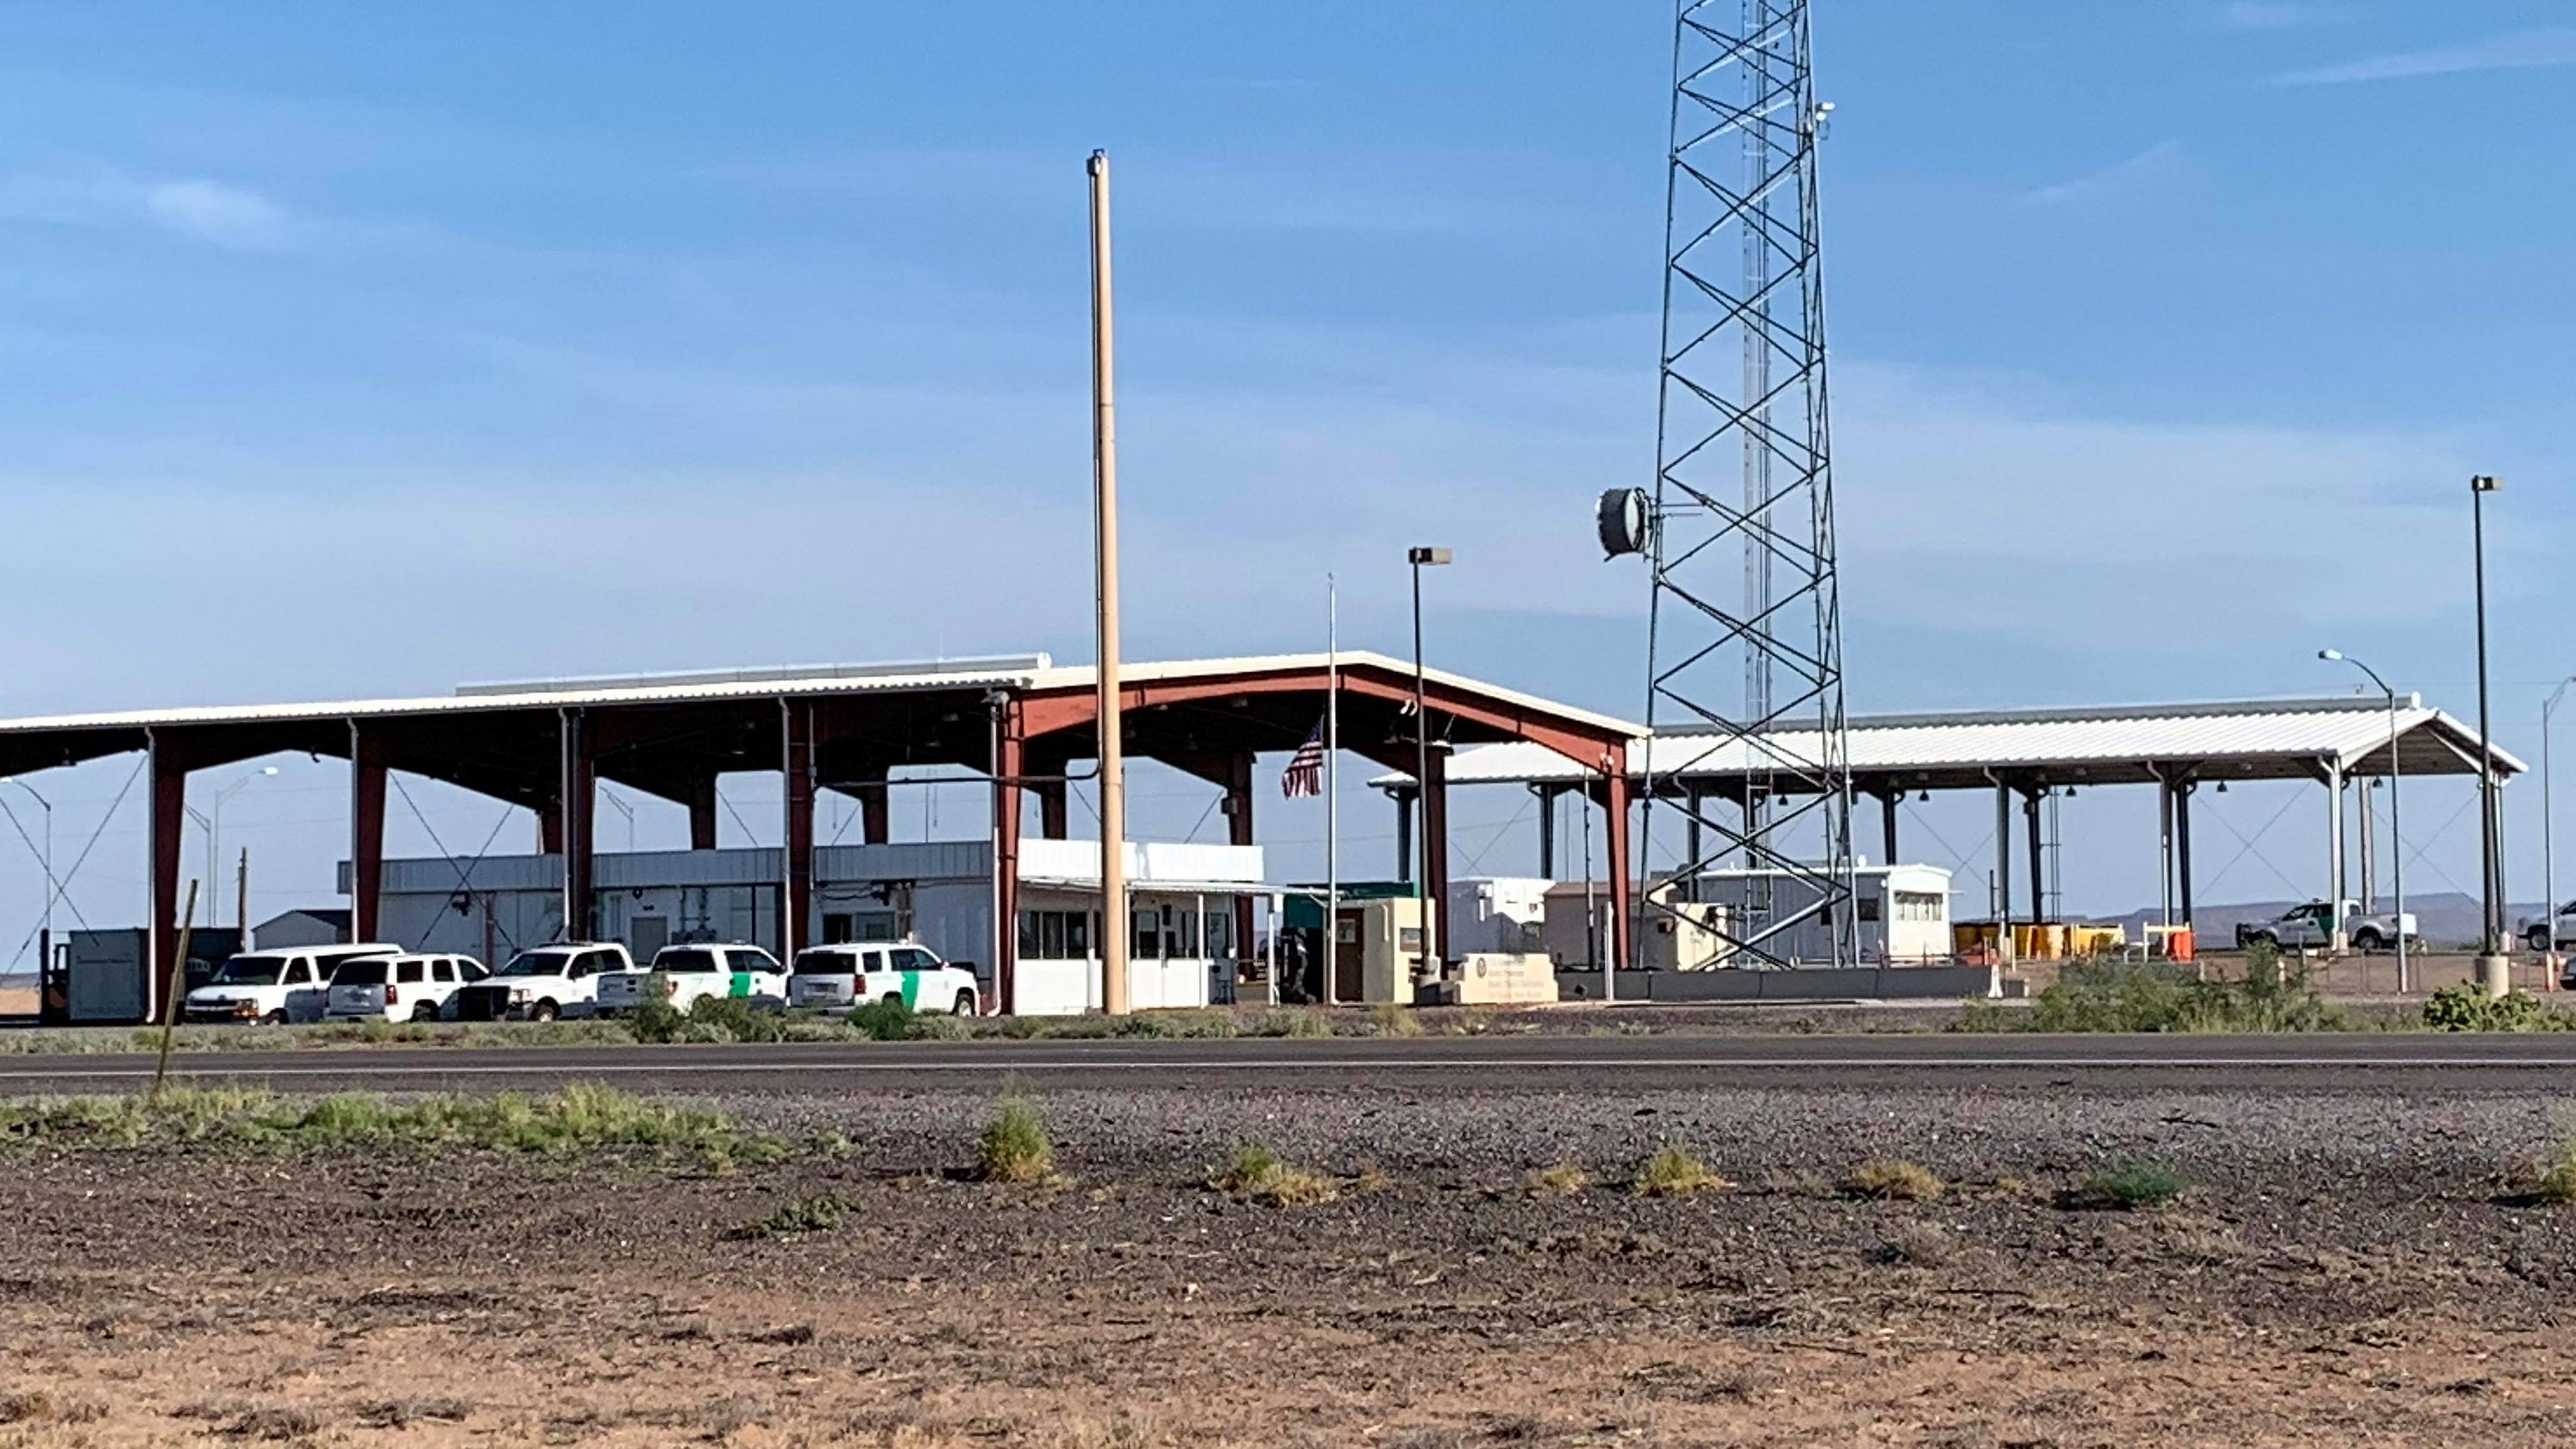 Border Patrol Checkpoints Reopen In New Mexico